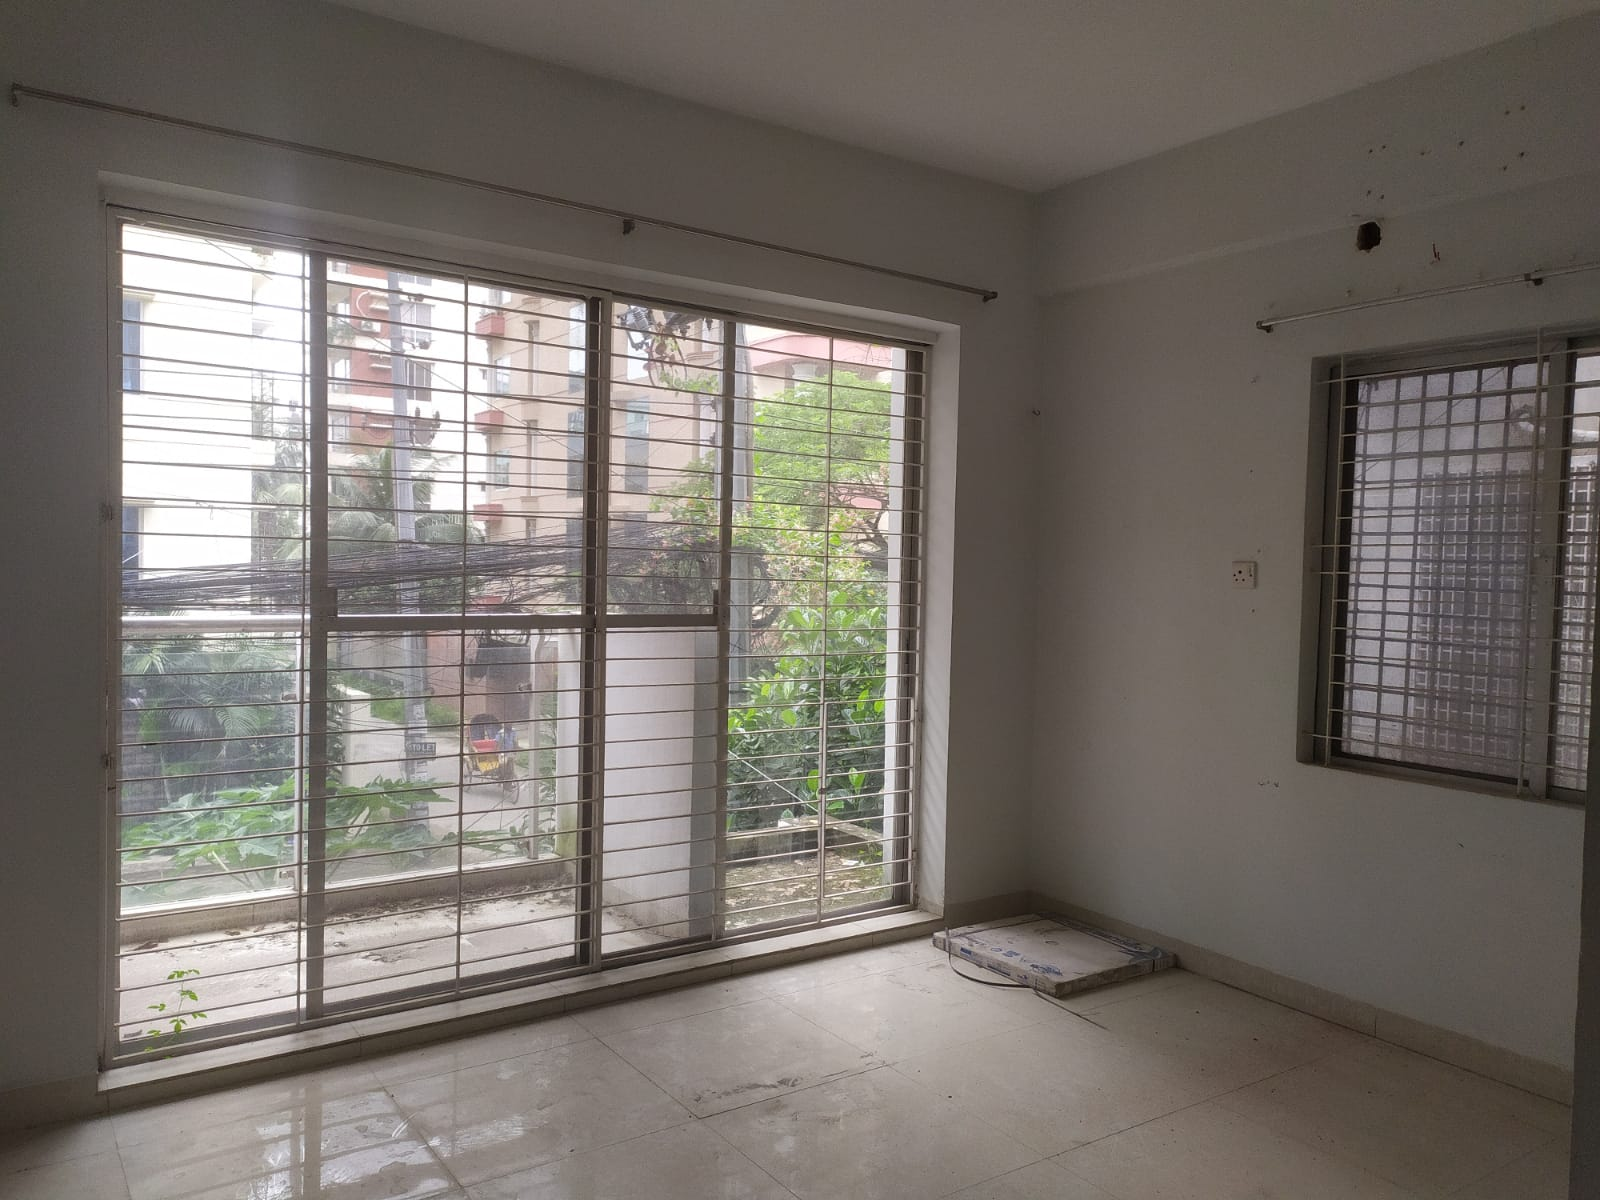 1748-sft-residential-apartment-for-rent-in-bashundhara-a1-a5-766204